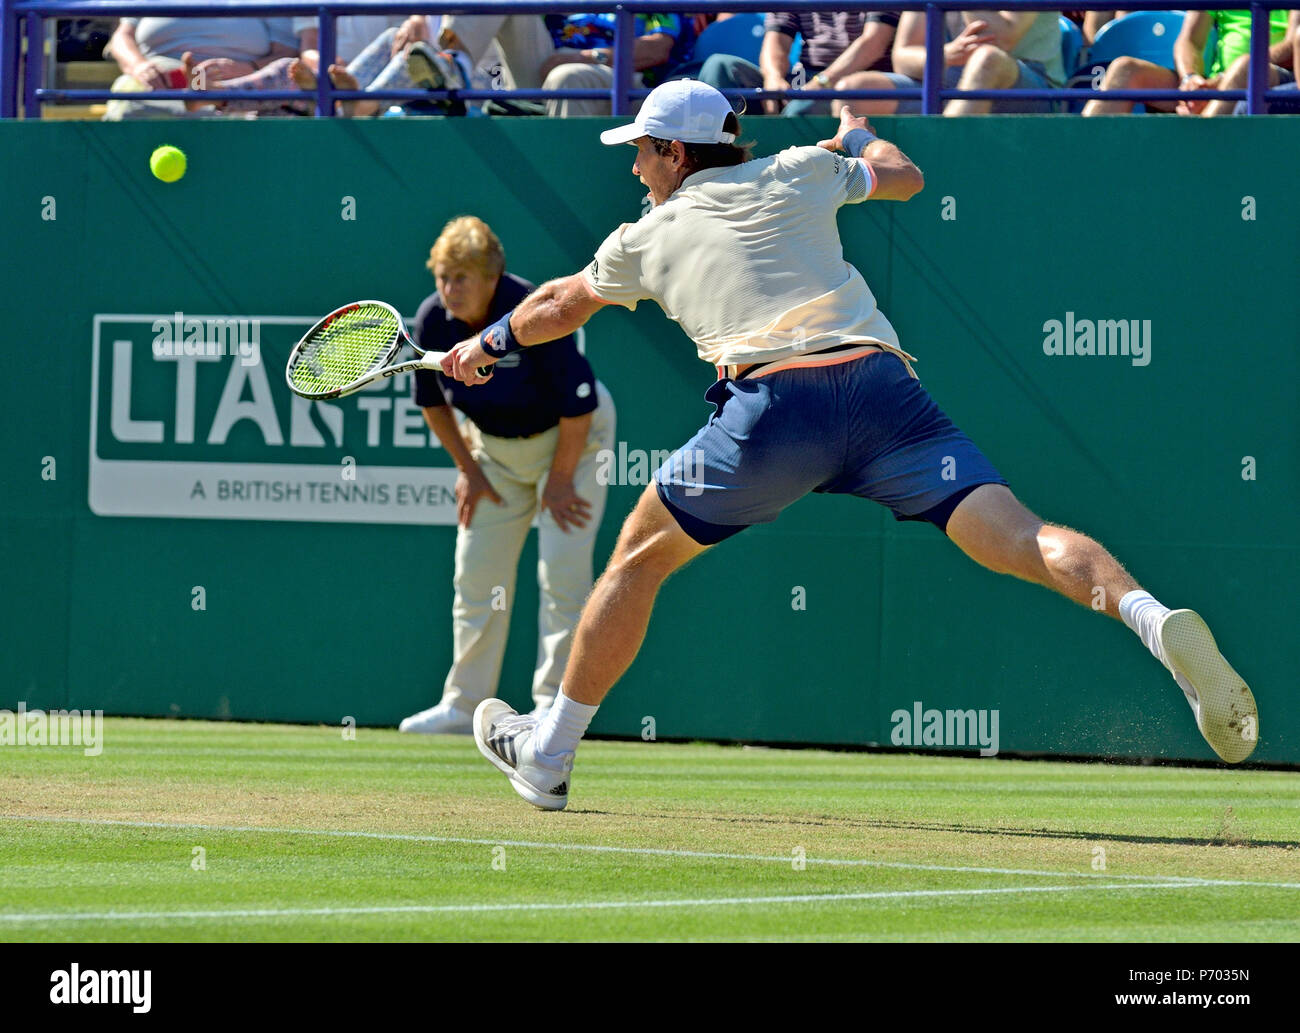 Mischa Zverev (GER) playing in the final of the Nature Valley International, Eastbourne 30th June 2018 - Stock Image